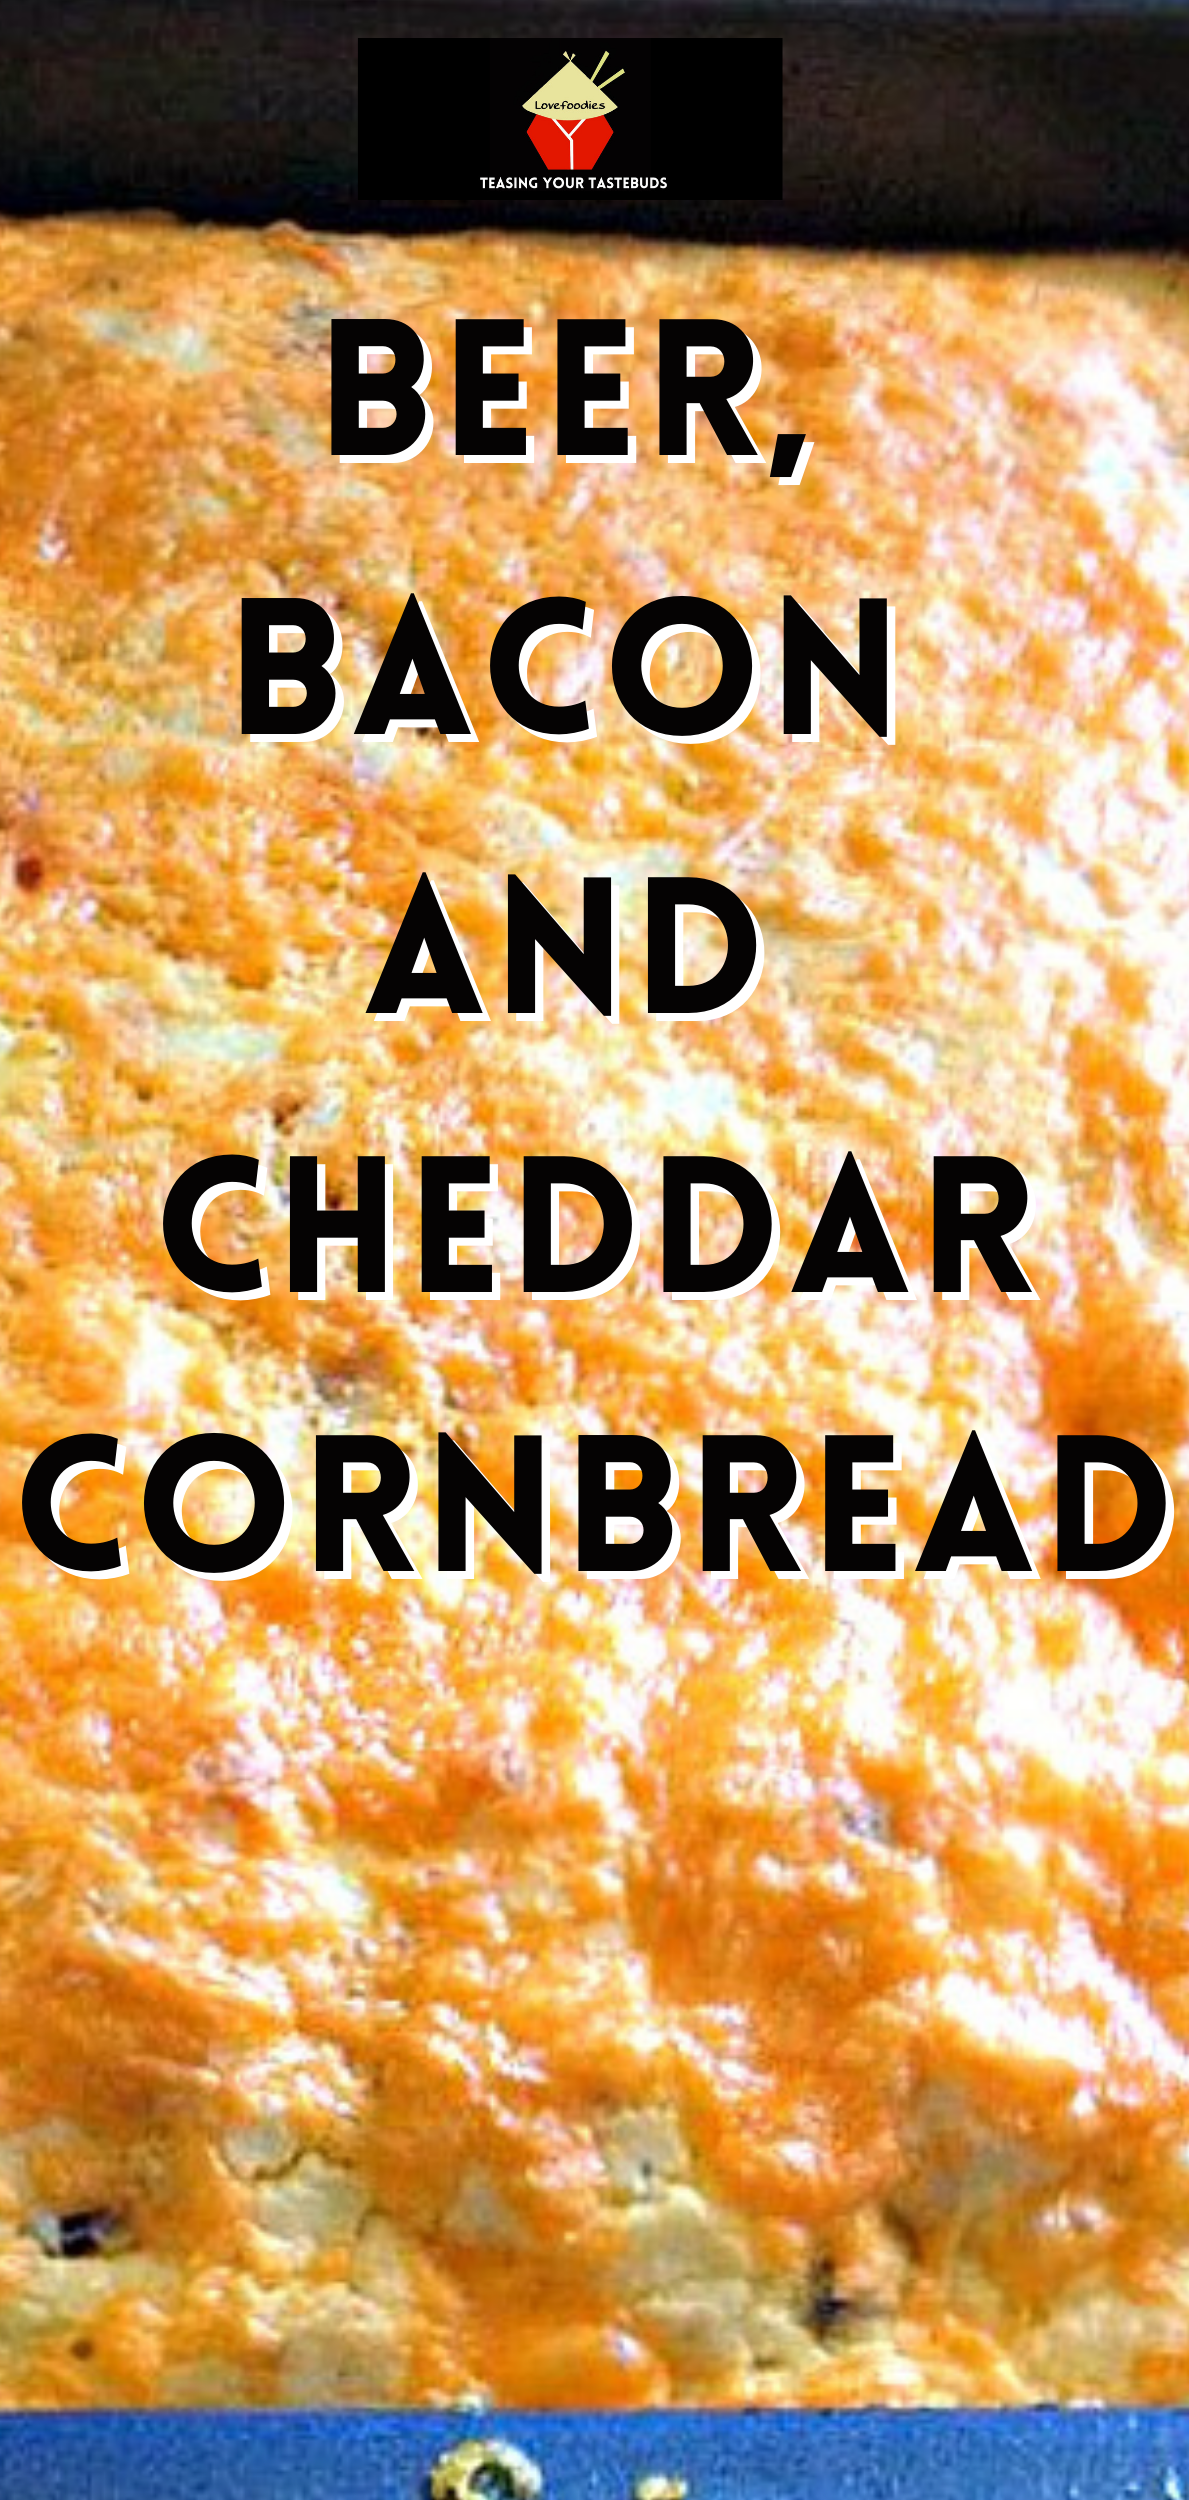 Beer, Bacon and Cheddar Cornbread. An easy recipe with a great flavour combination. Goes well with soups, chili, stews or simply on it's own!